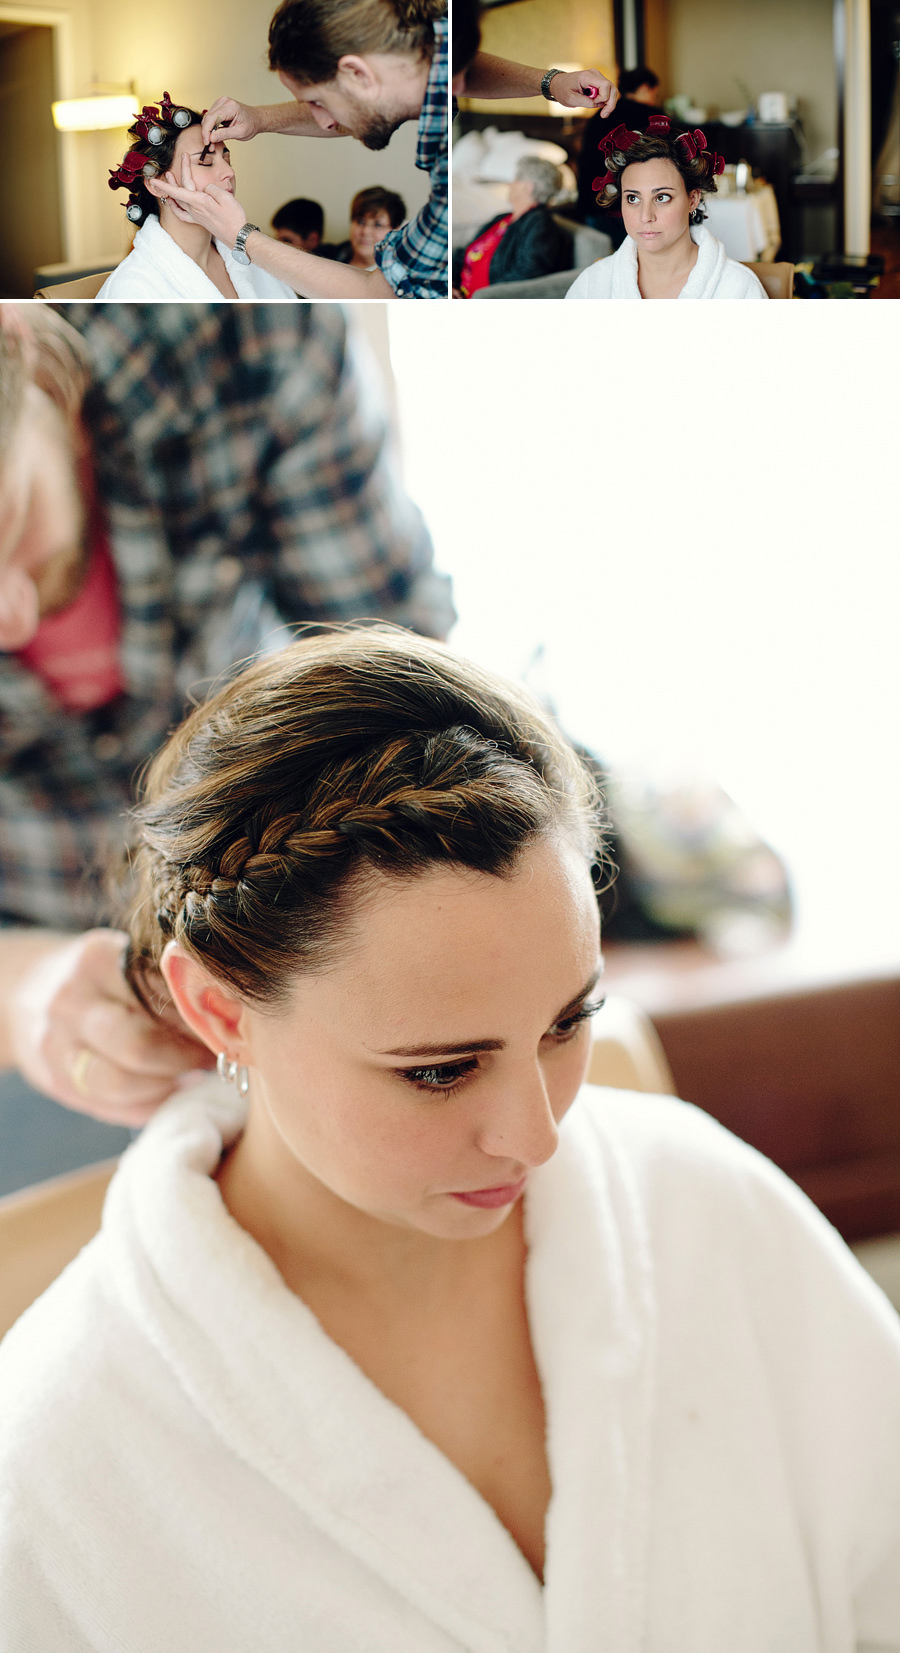 Shangri La Wedding Photography: Bride having hair done